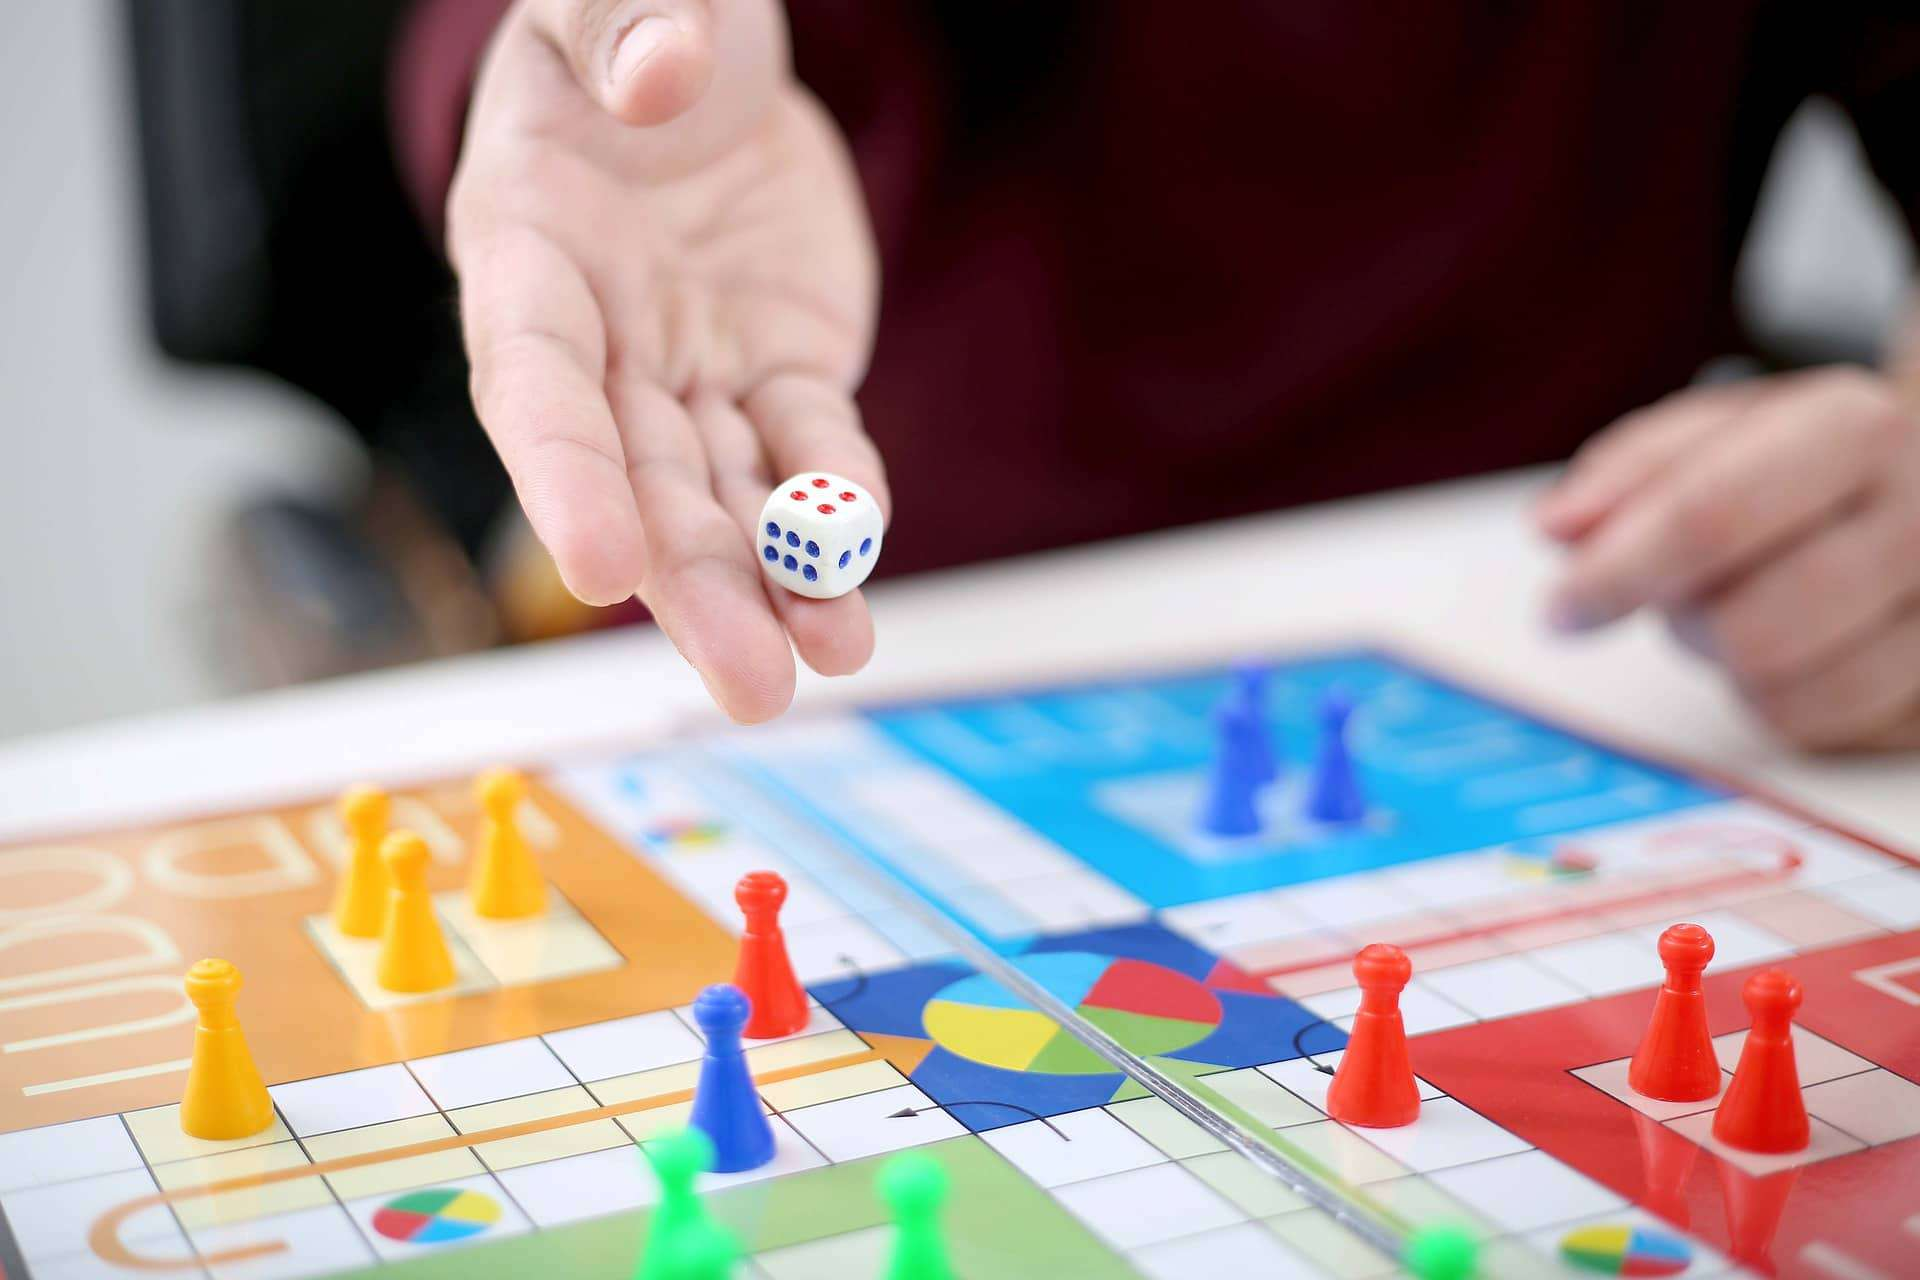 Man holding the dice and ready to release it to win for the game